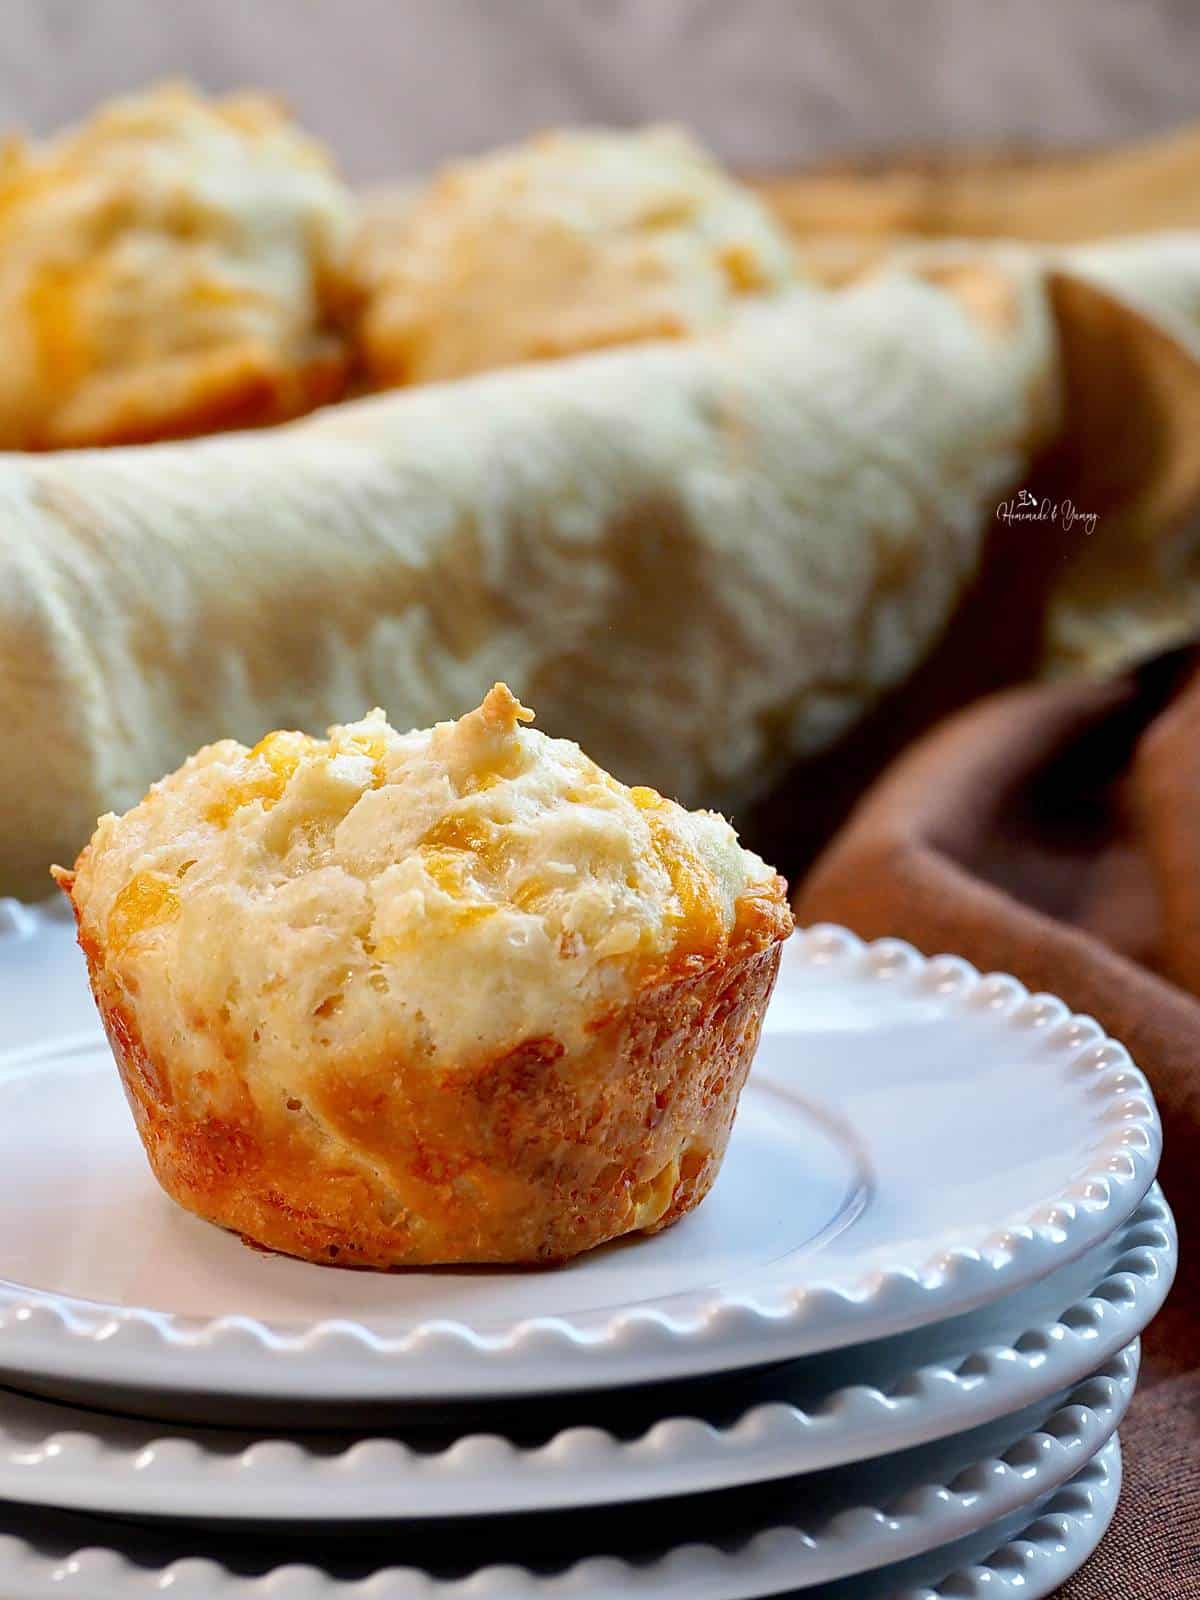 One muffin on a stack of white plates.